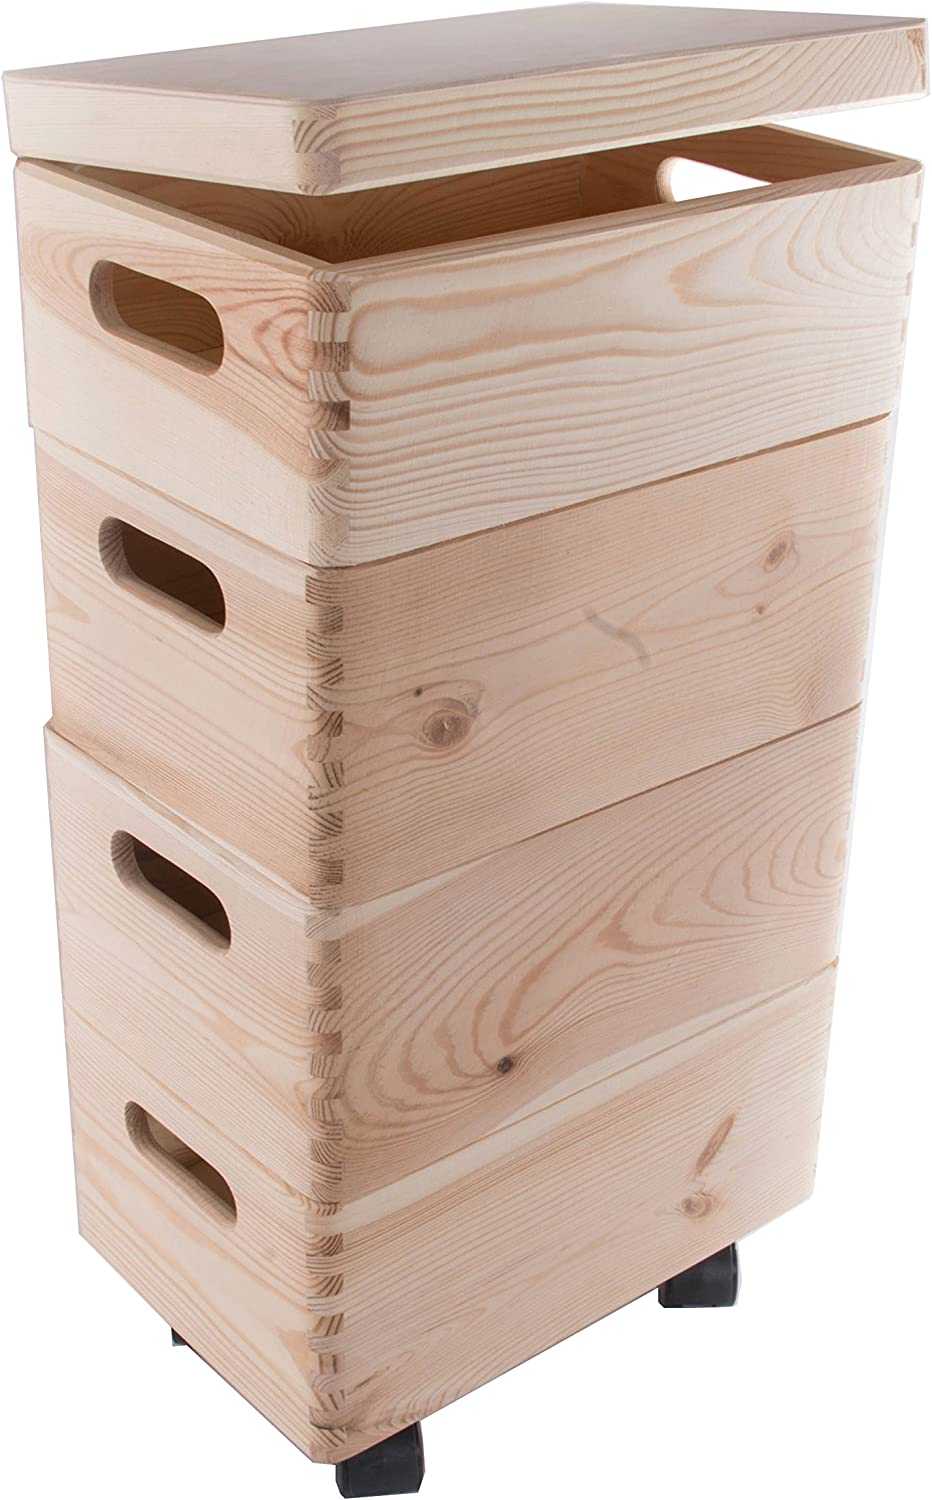 4 Wooden Stackable Storage Crates/Boxes With Hinged Lid/Handles And Wheels/Toy Box 30 x 20 x 58 cm